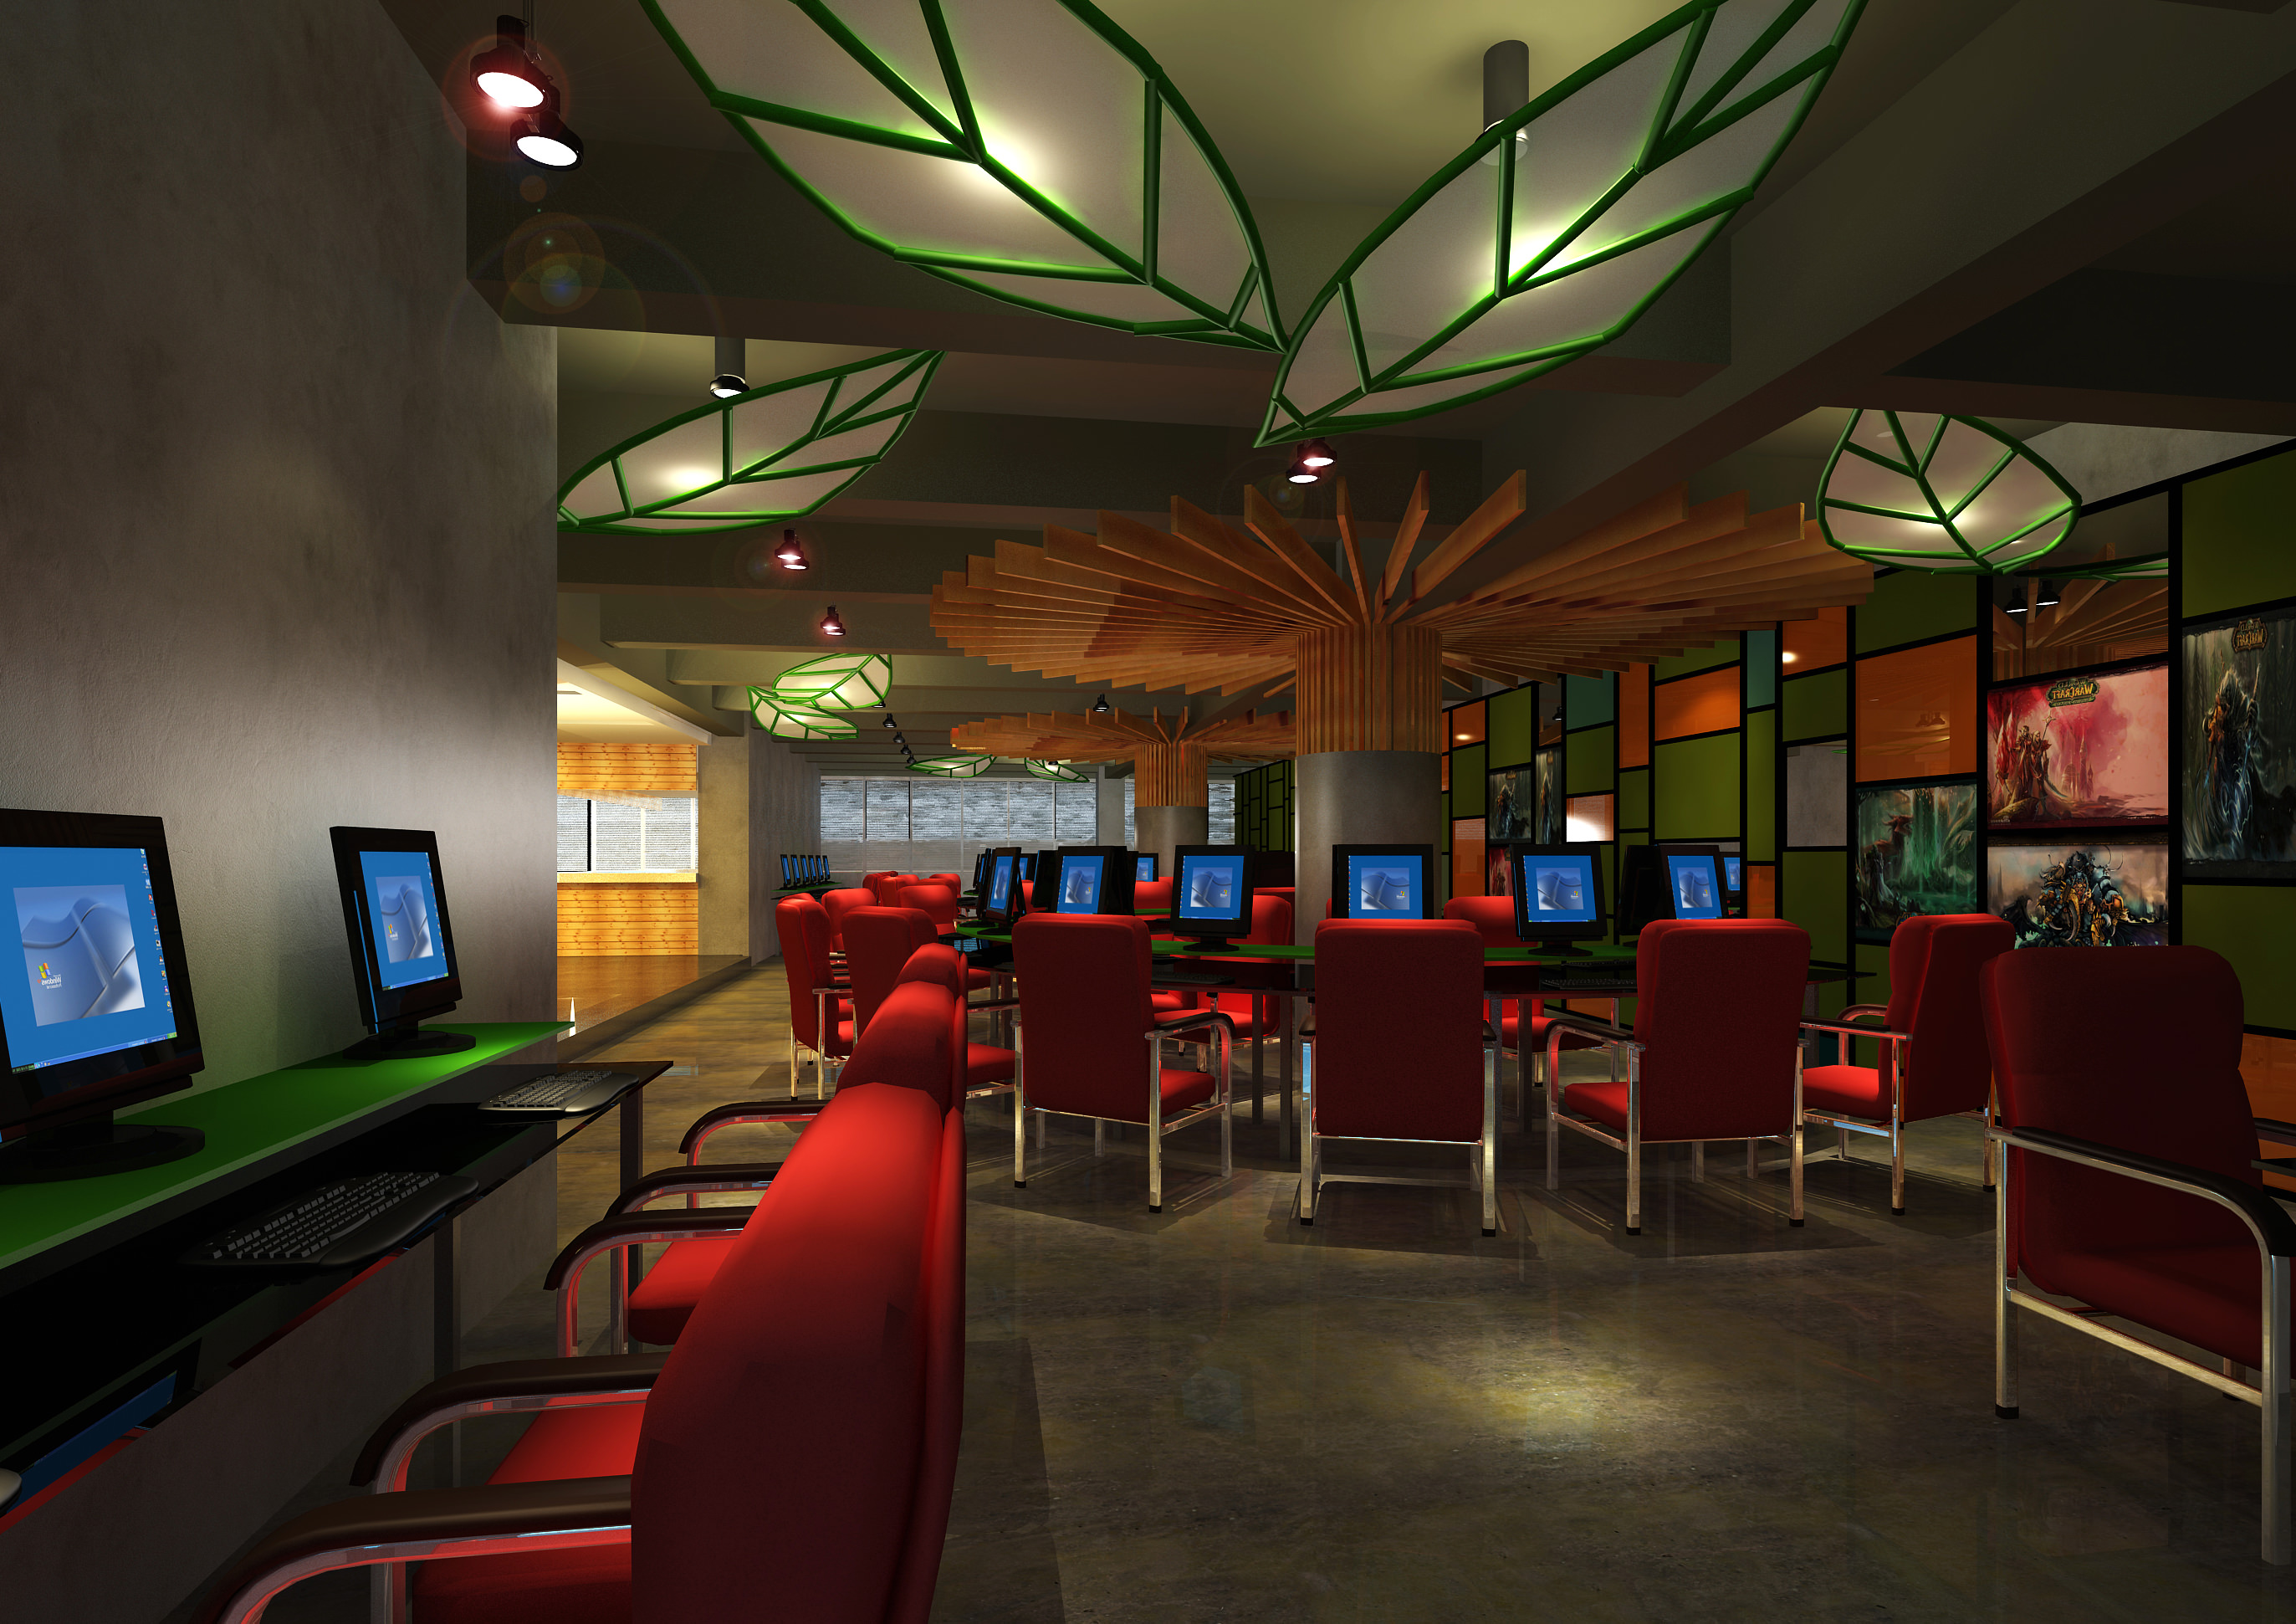 Cyber cafe with decor interior 3d model max for Decor 3d model